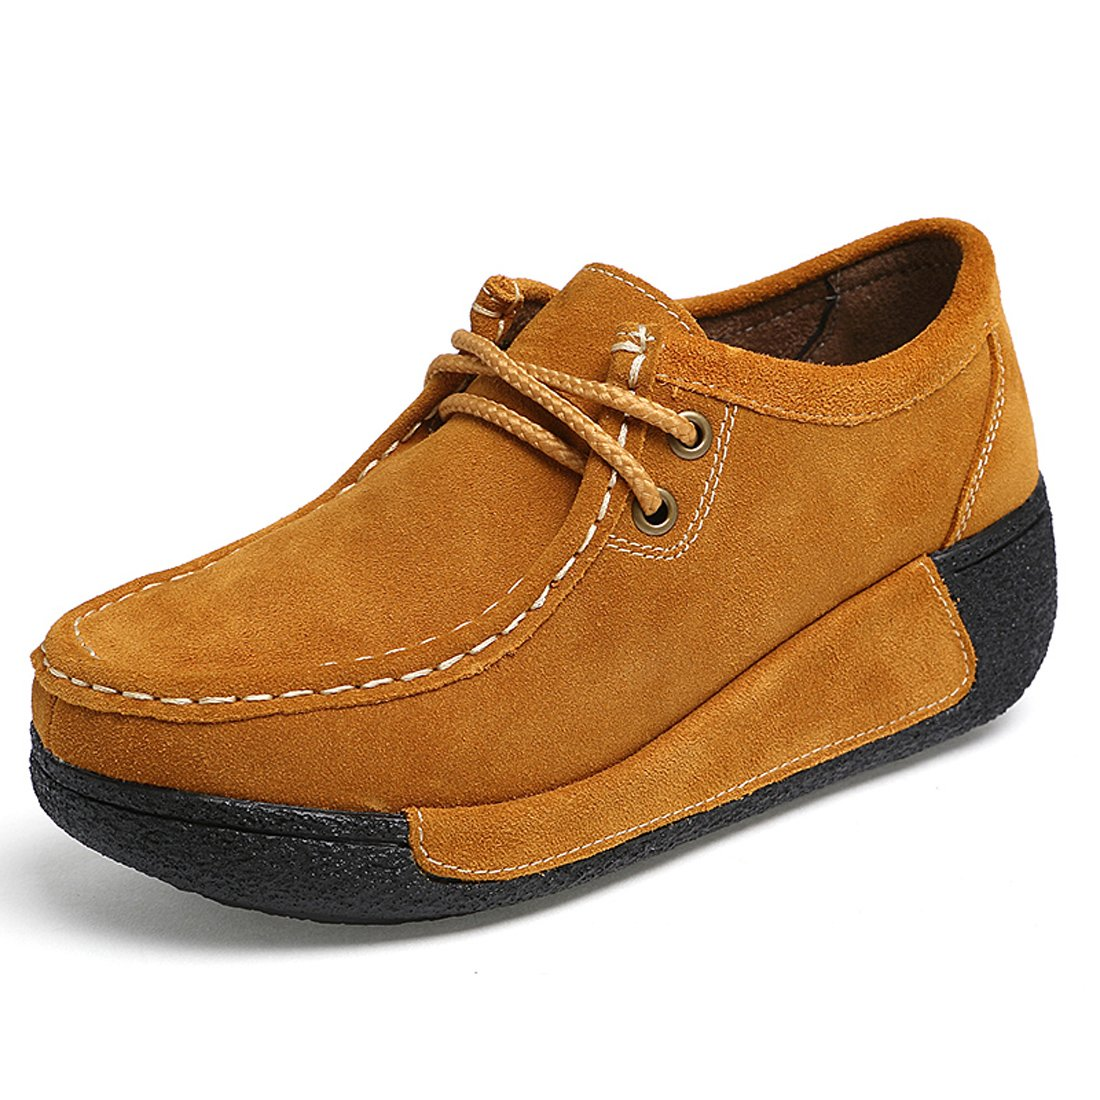 Z.SUO Mocassins Femmes Z.SUO Suède Casuel Loafers Confort Chaussures Jaune Loafers Jaune ef70e16 - latesttechnology.space